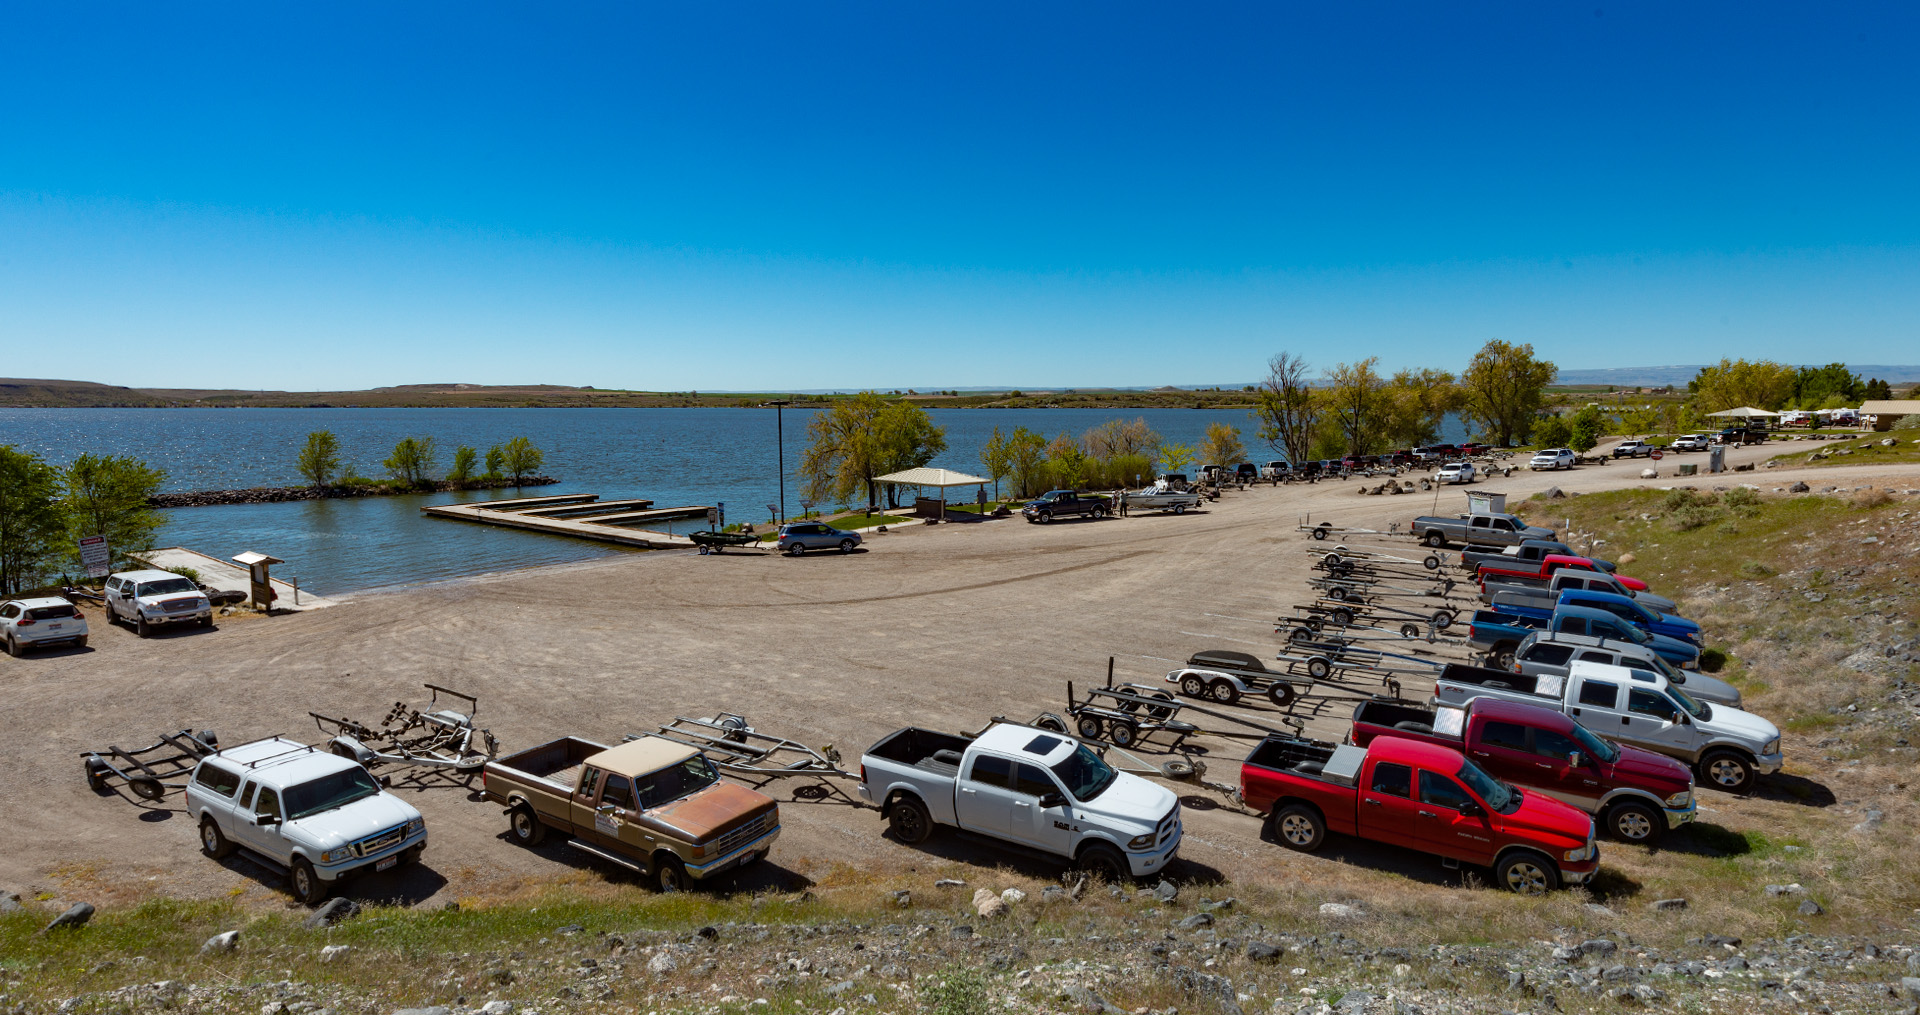 trucks and trailers parked at c.j. strike dam boat ramp